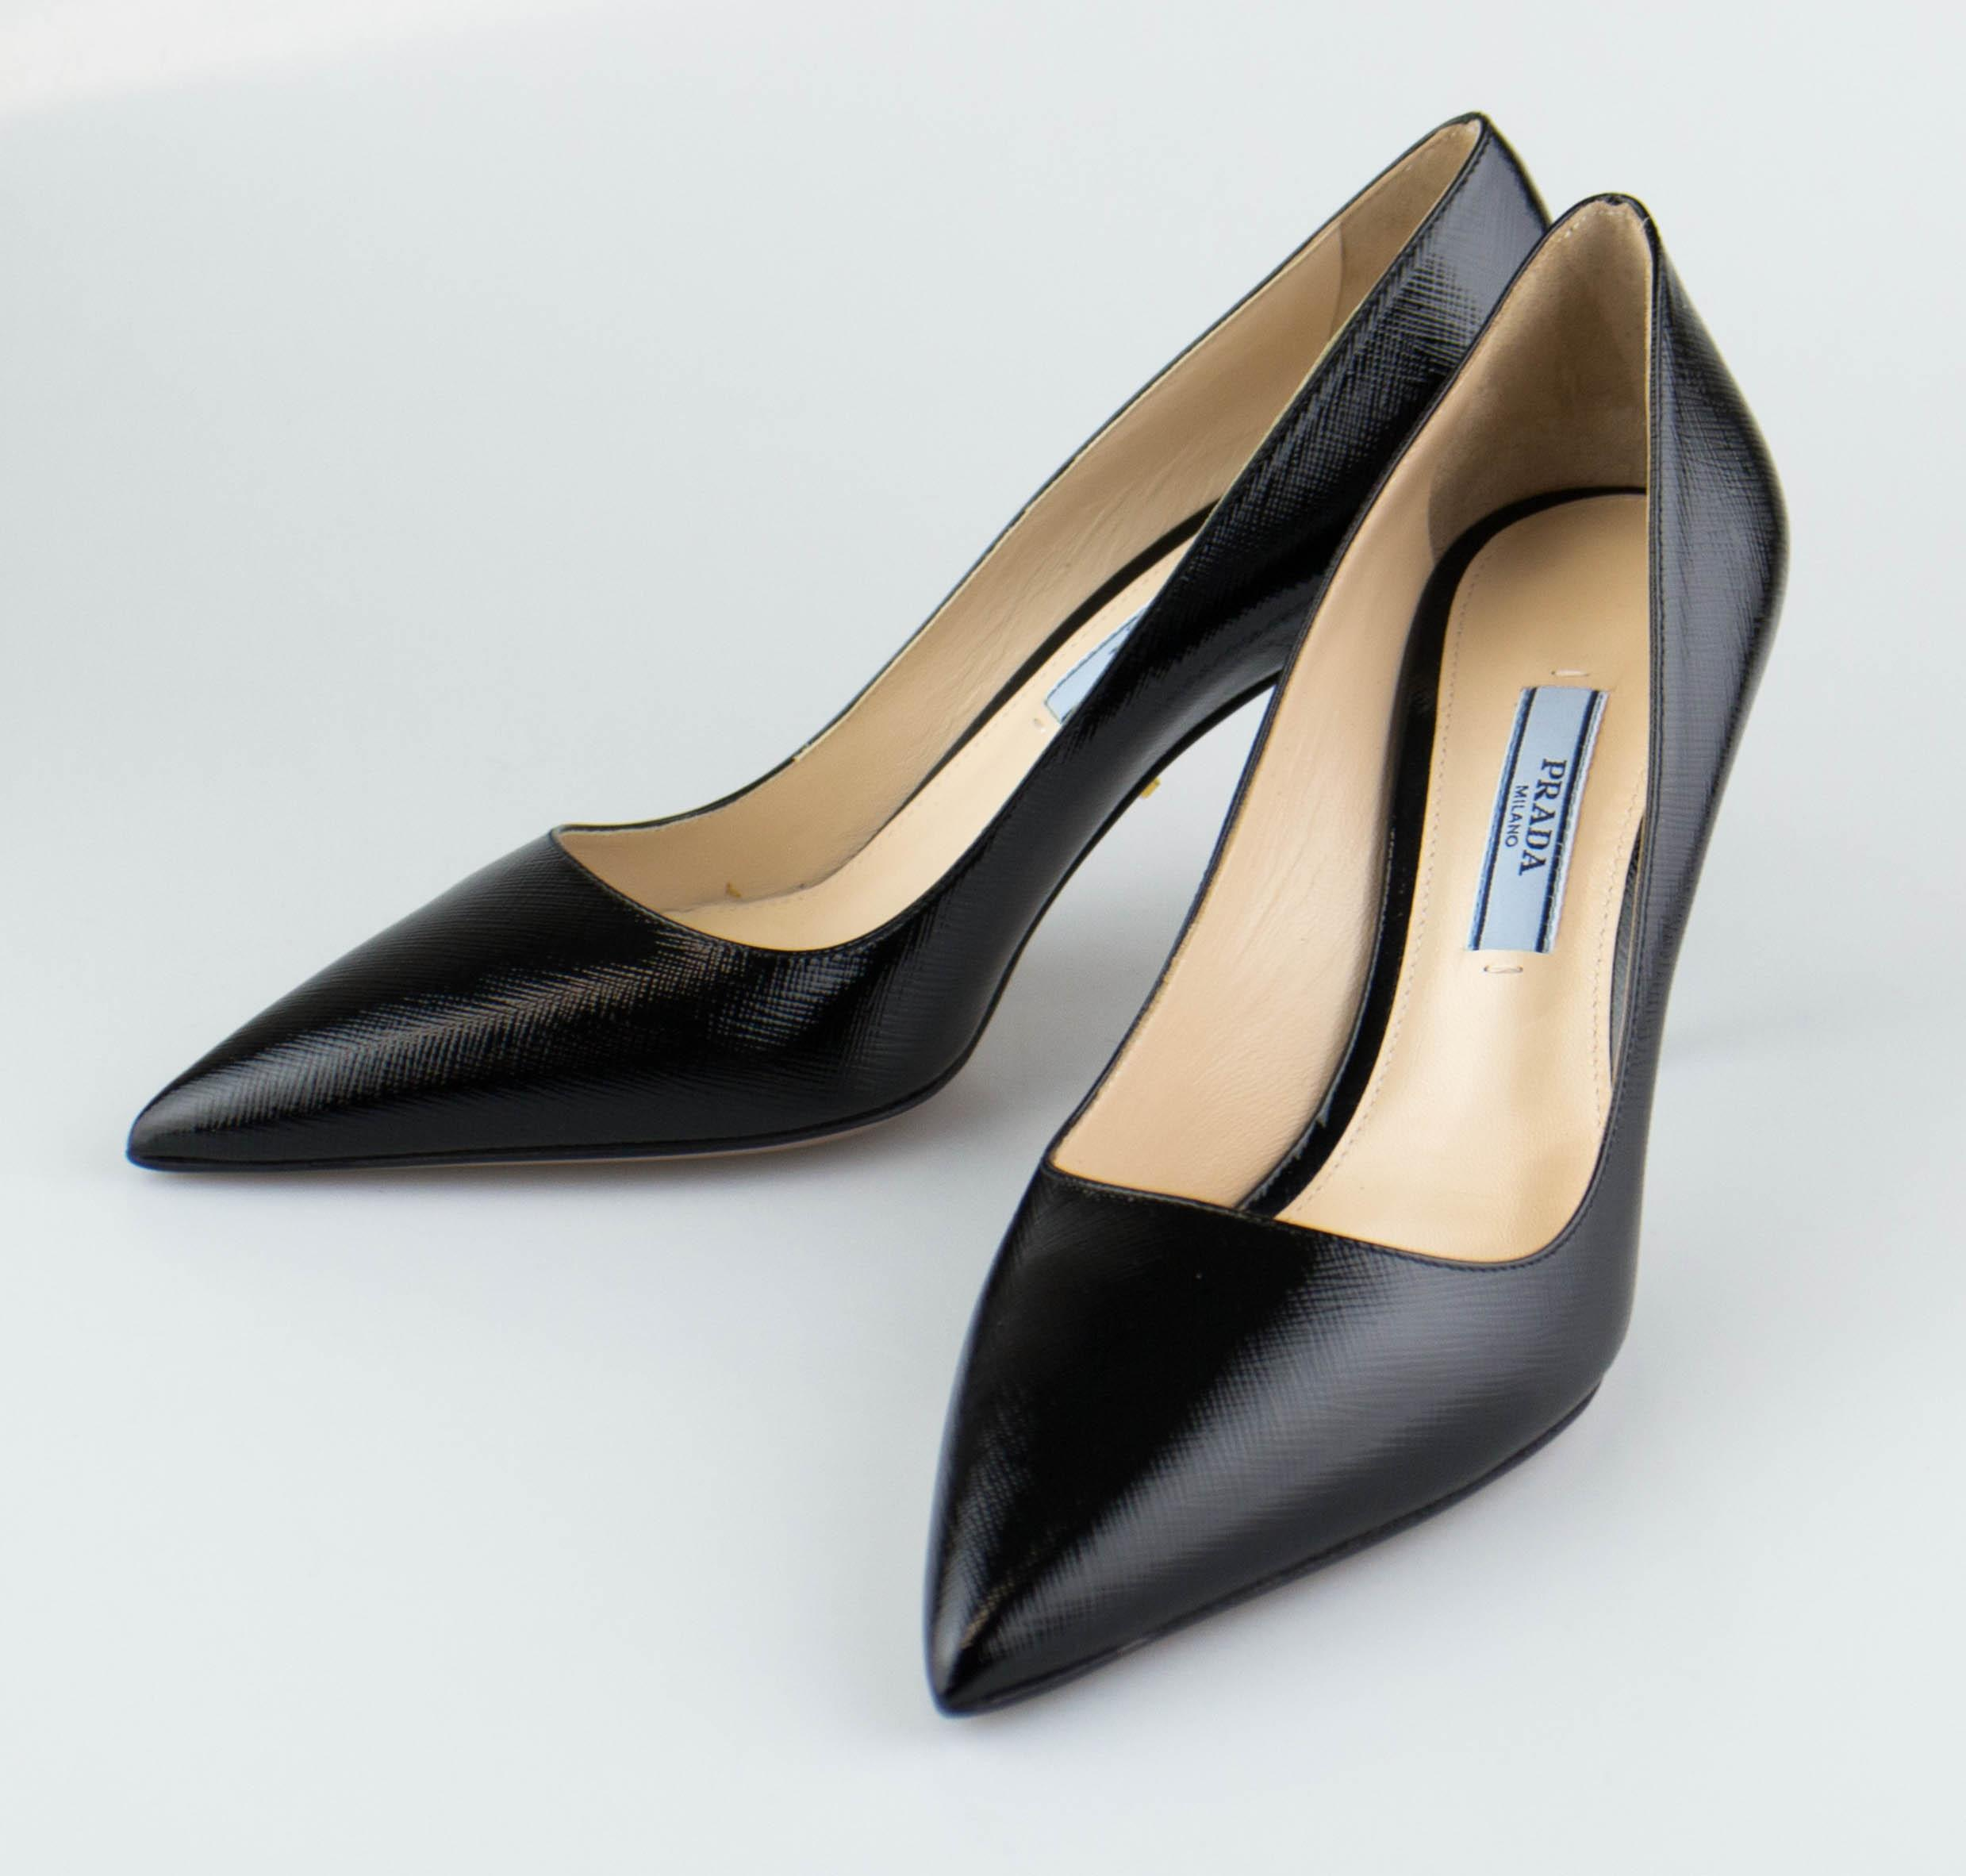 c34742a94da US 6 Prada Black Leather High Shine Pumps Size Size Size EU 36 (Approx. US  6 ...